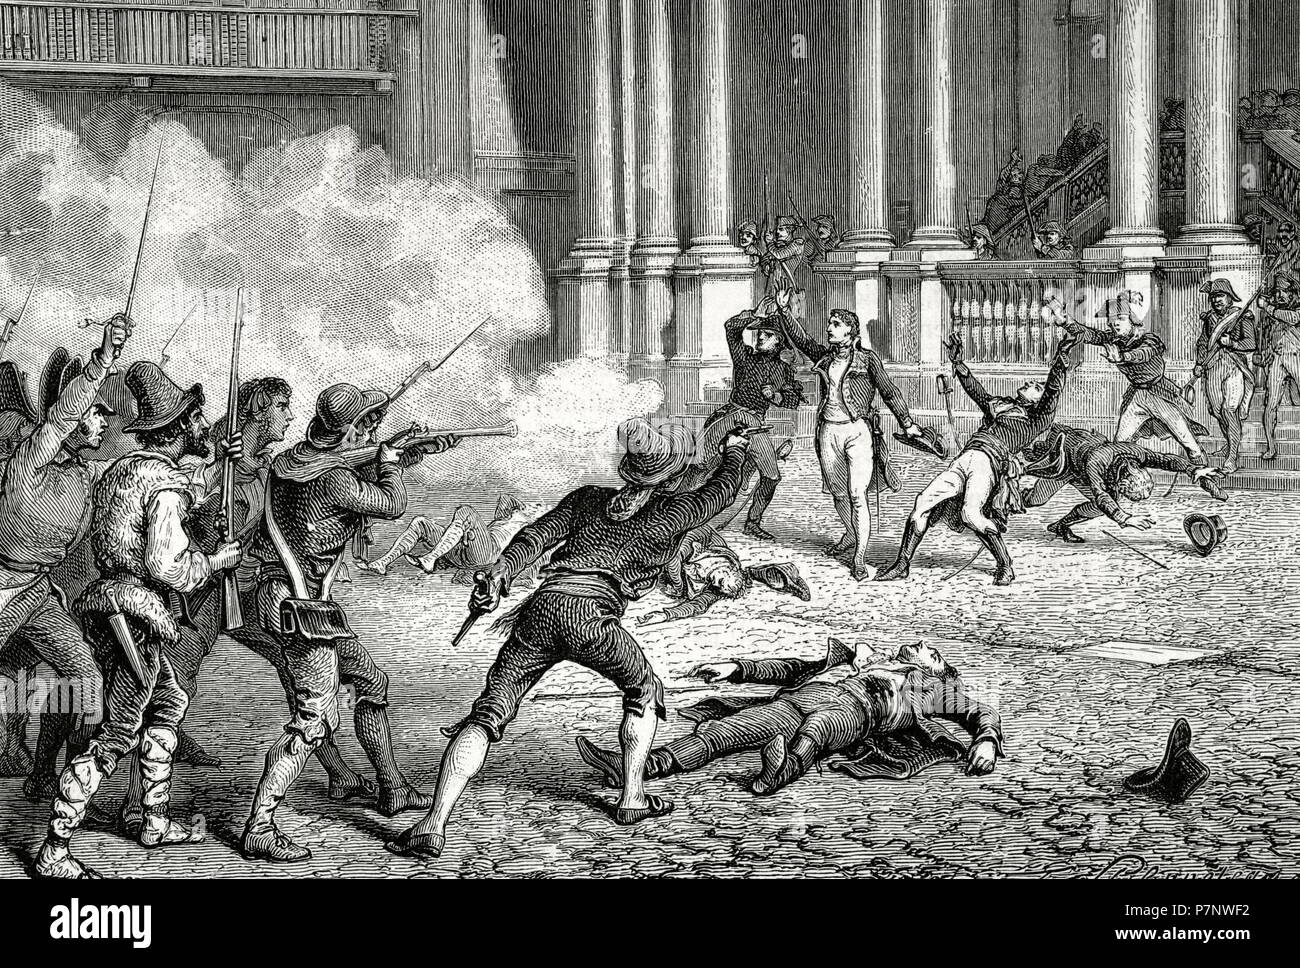 The French Revolutionary Wars (1792-1802). Italian campaign. Rome. Assassination of the French general Leonardo Duphot (1770-1797), killed in a tumult by the pontificial soldiers, Decembrer 28, 1797. Engraving by F. Philippoleau. Historia de la Revolucio_n Francesa, 1875. - Stock Image